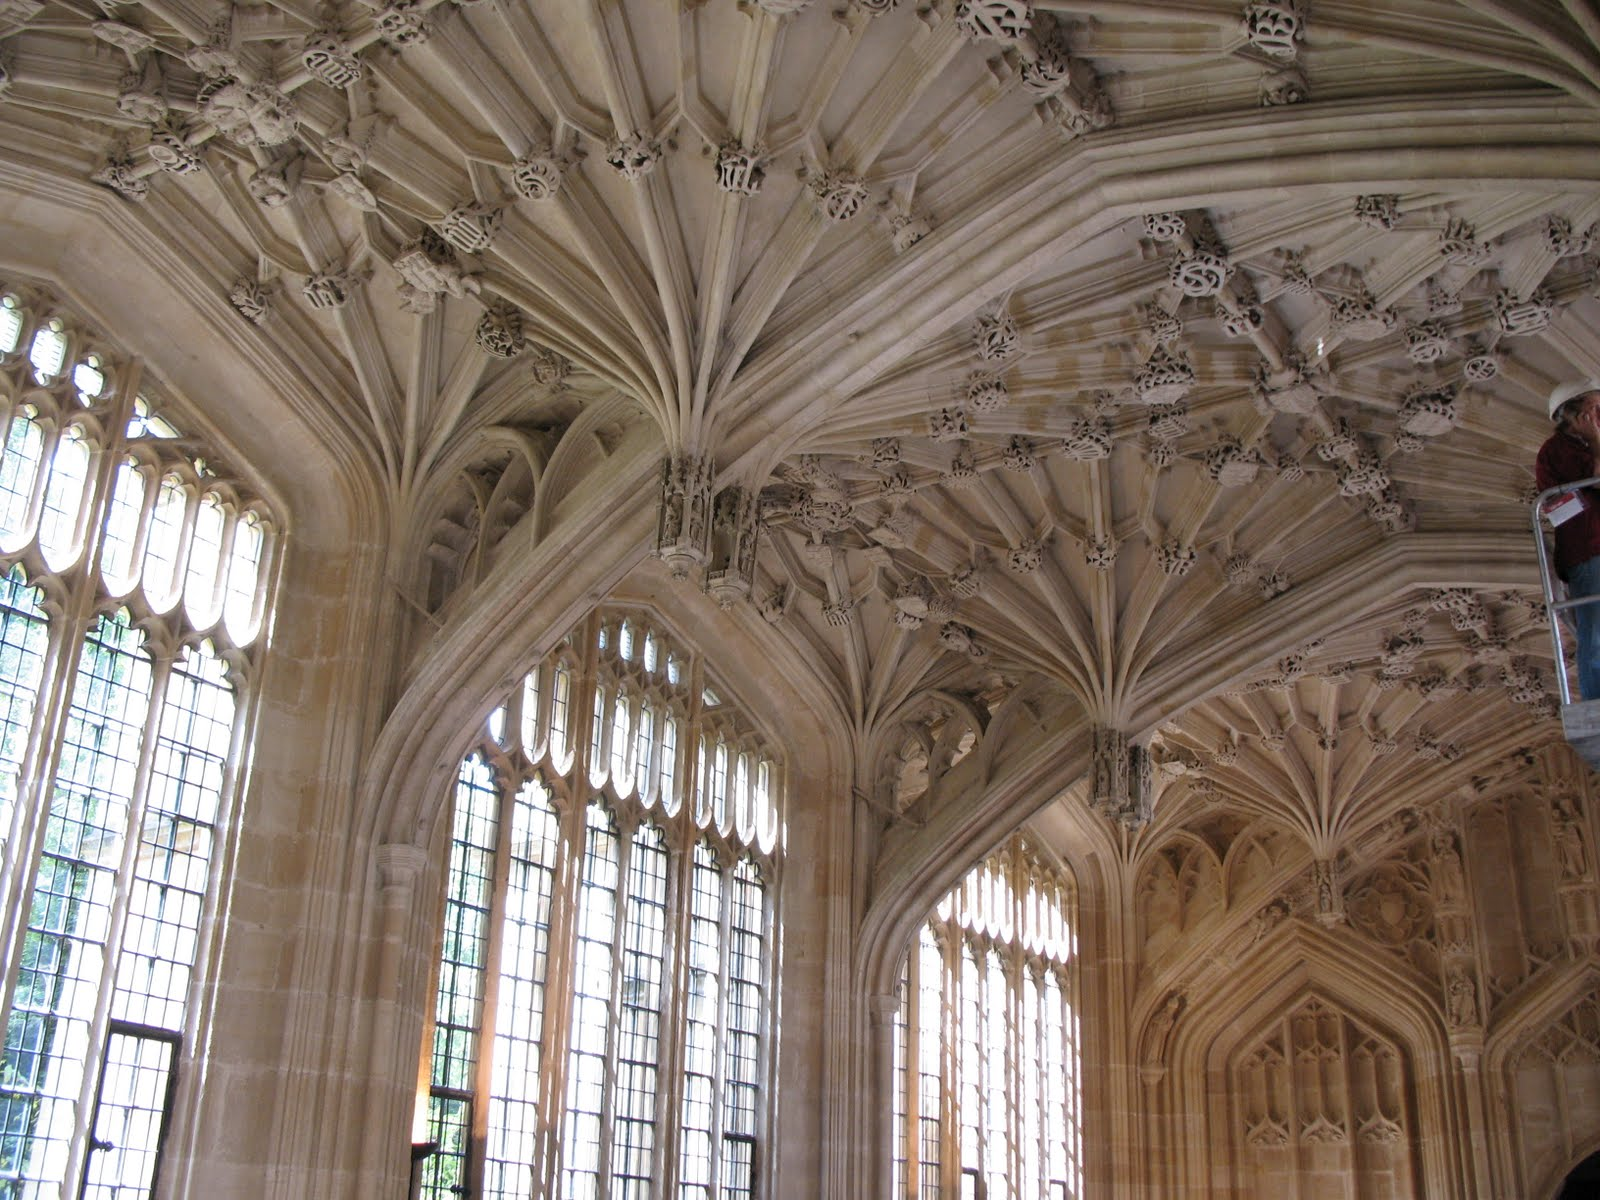 Amazing Wallpaper Harry Potter Library - The+Divinity+School  Image_909126.JPG